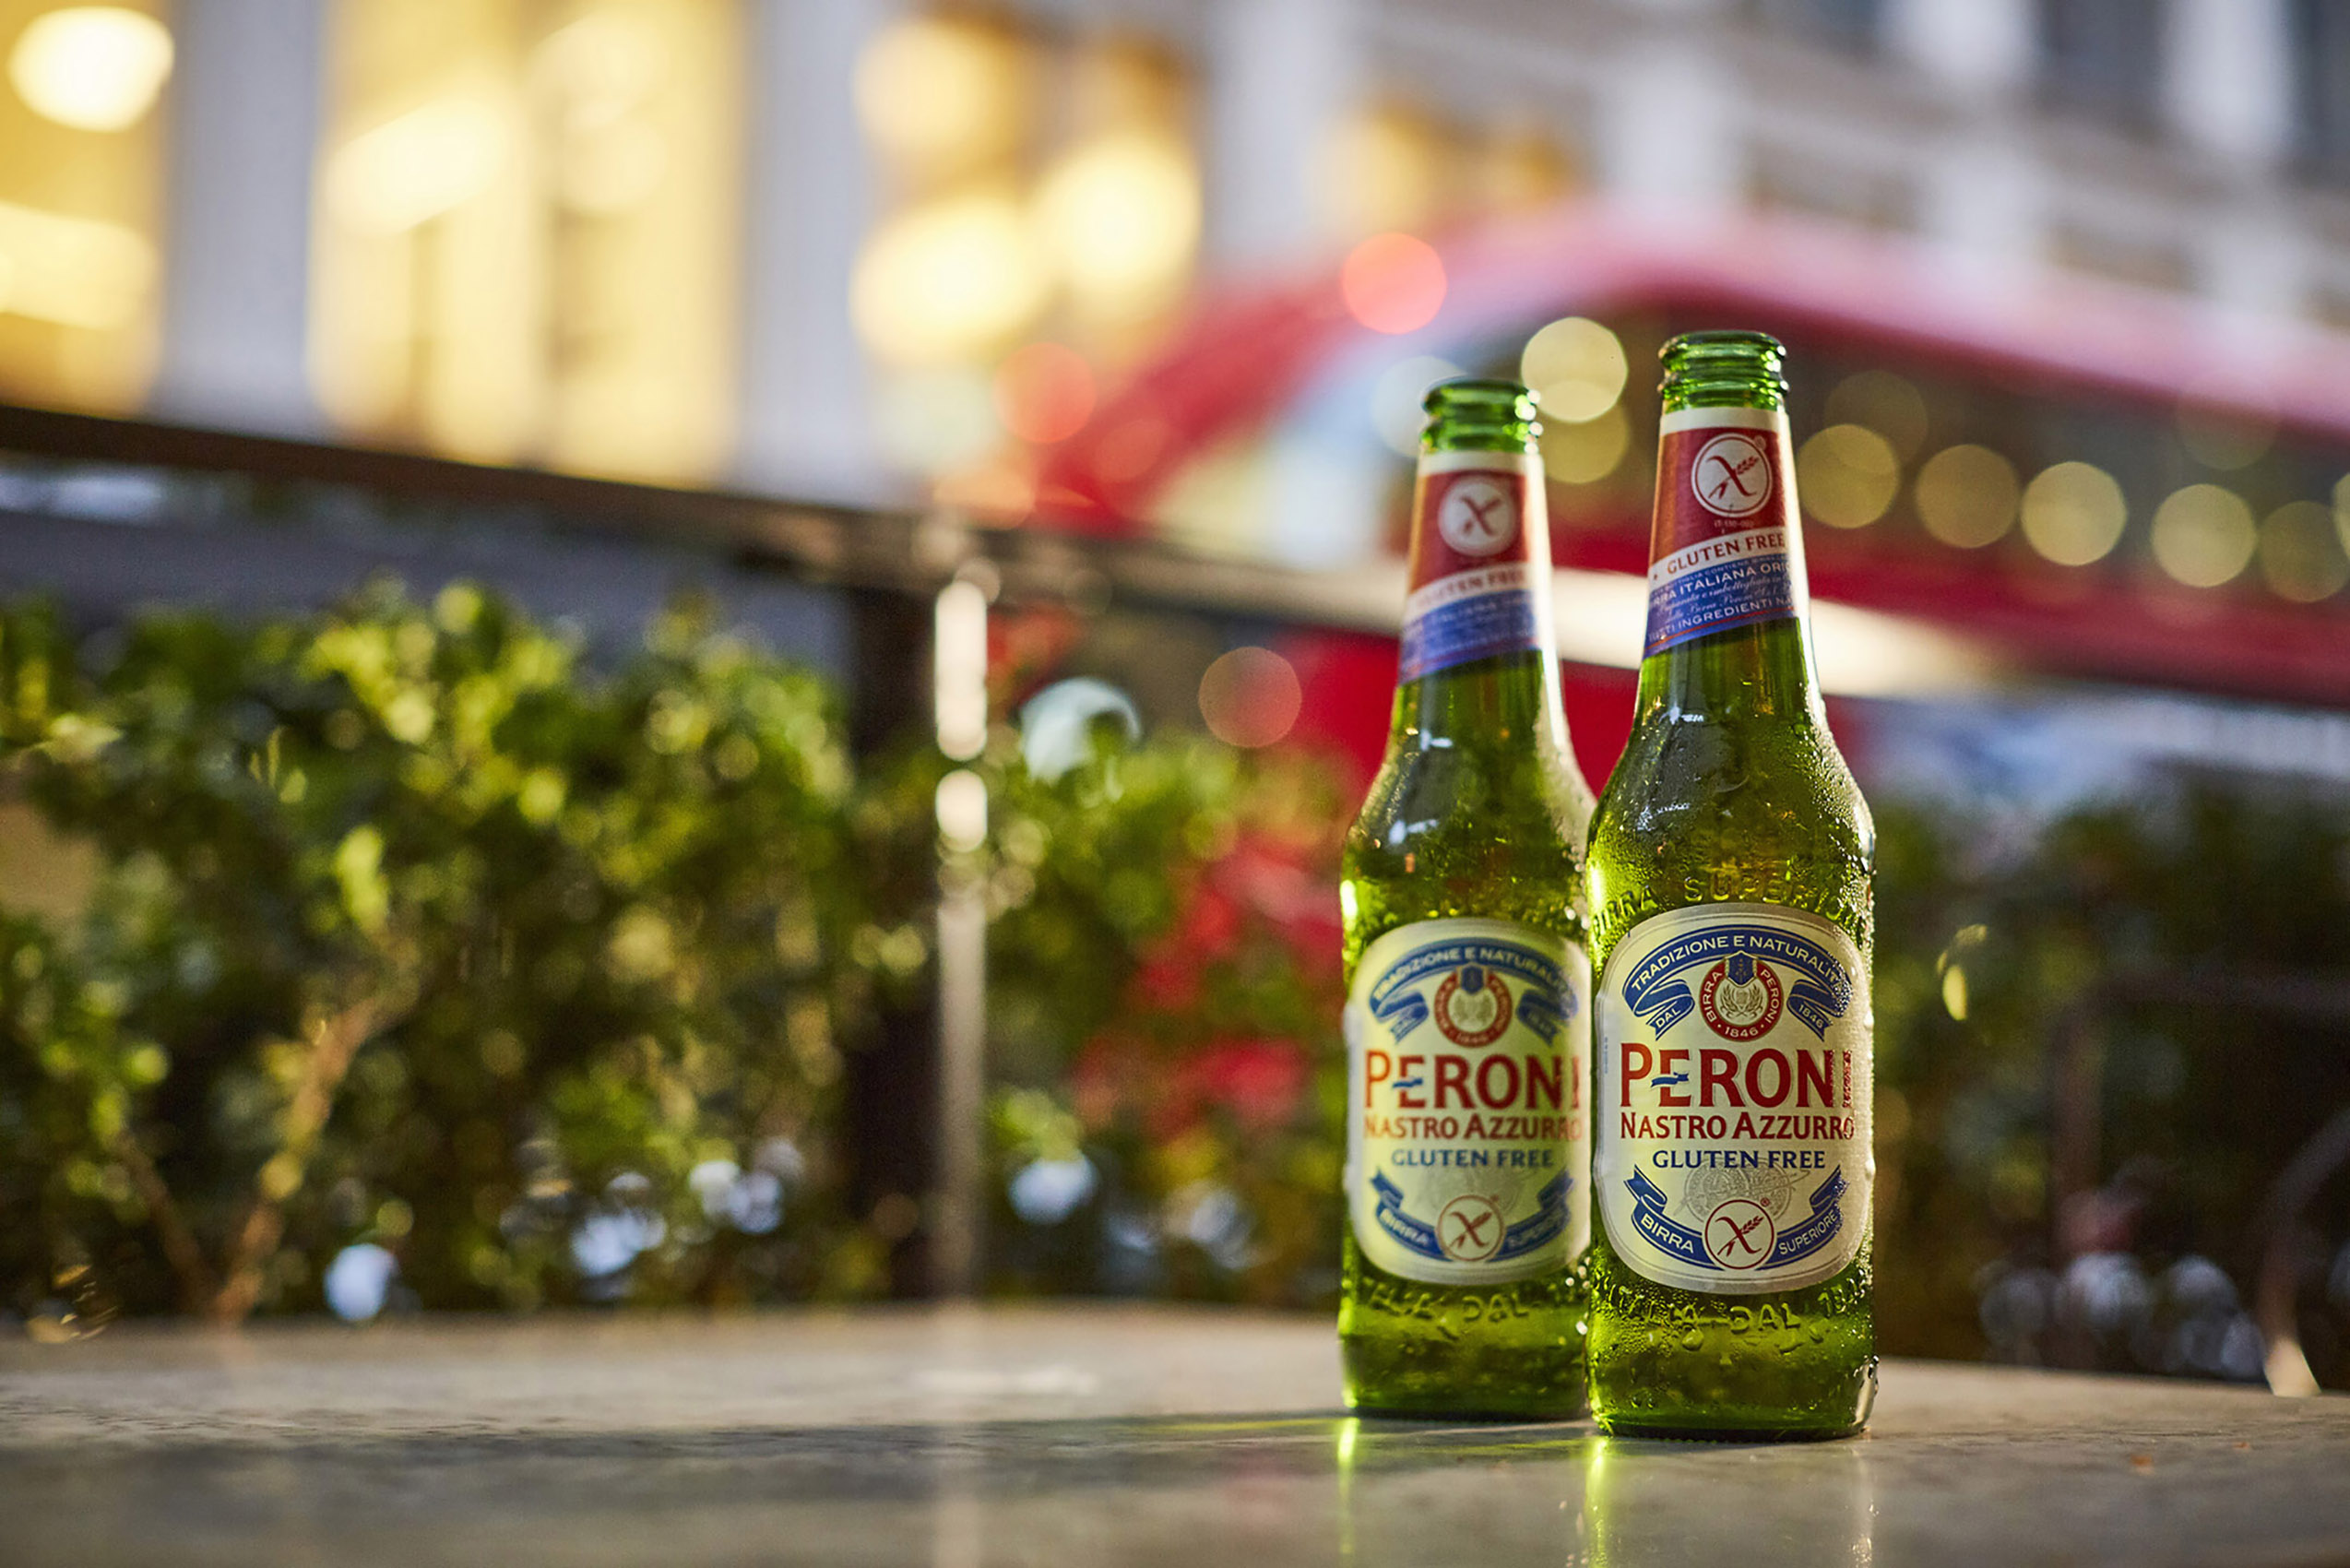 SteveRyan_Photographer_Drink_Beer_Peroni_22